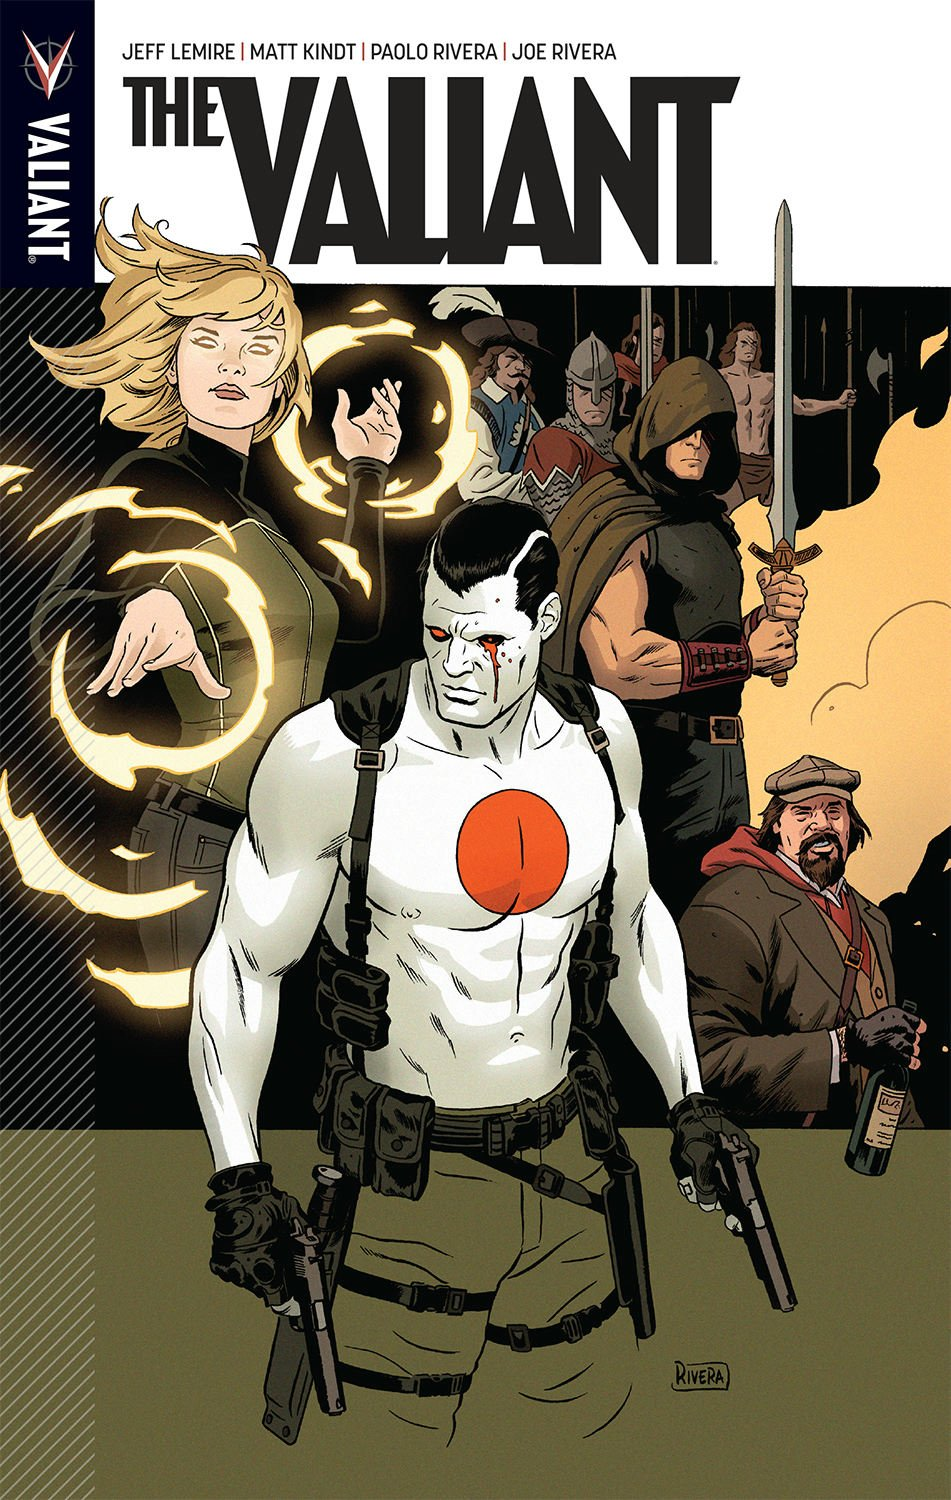 The Valiant Vol. 1 TPB, cover by Paolo Rivera